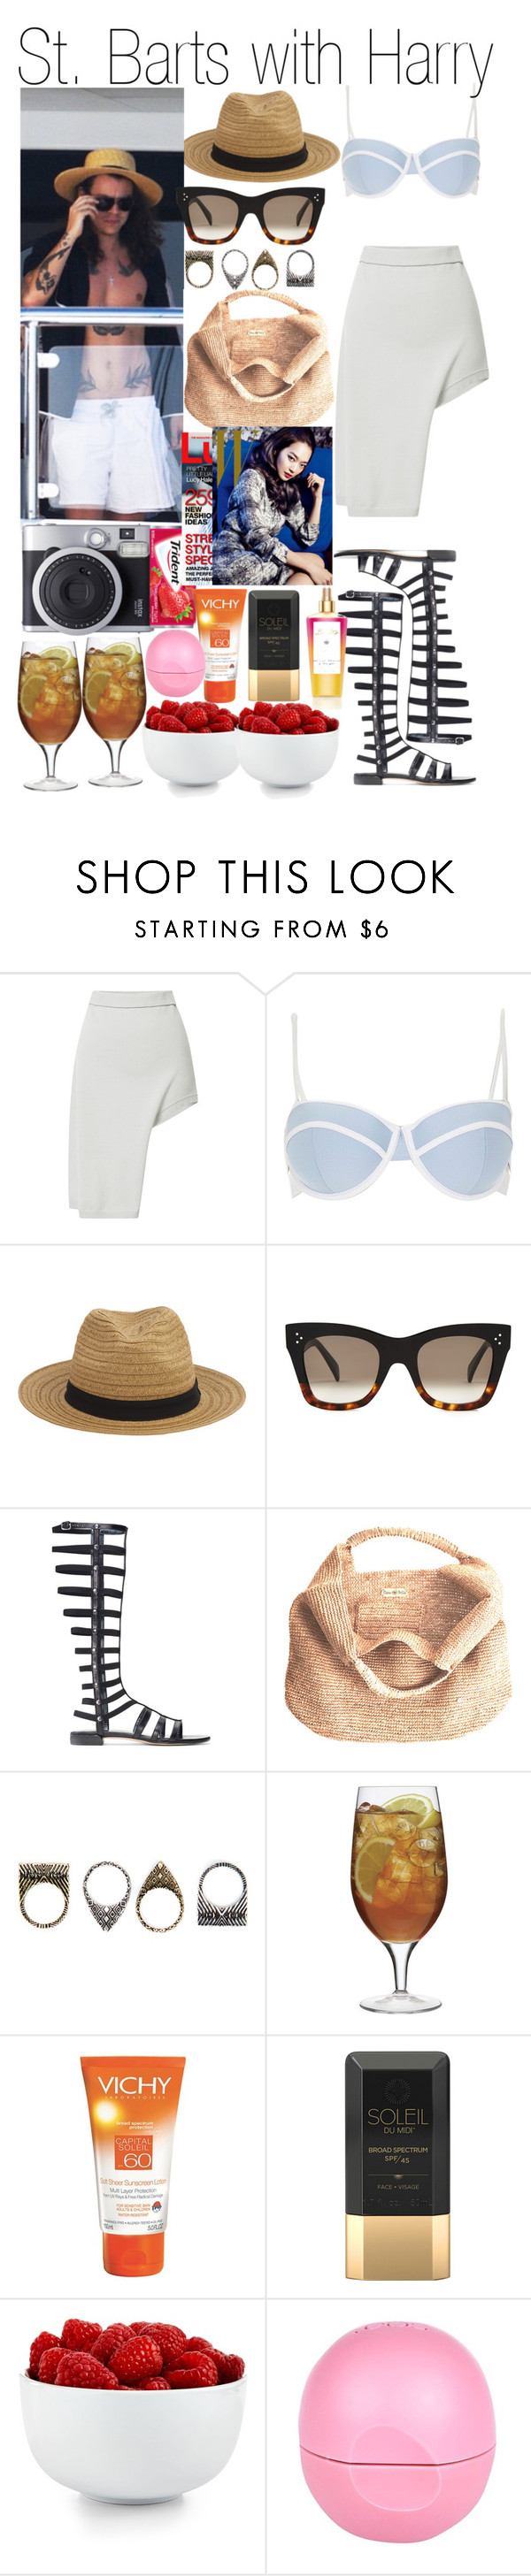 """""""St. Barts with Harry"""" by kiksfashion ❤ liked on Polyvore featuring Opening Ceremony, River Island, CÉLINE, Stuart Weitzman, Flora Bella, Pull&Bear, Luigi Bormioli, Vichy, Soleil Toujours and Victoria's Secret"""